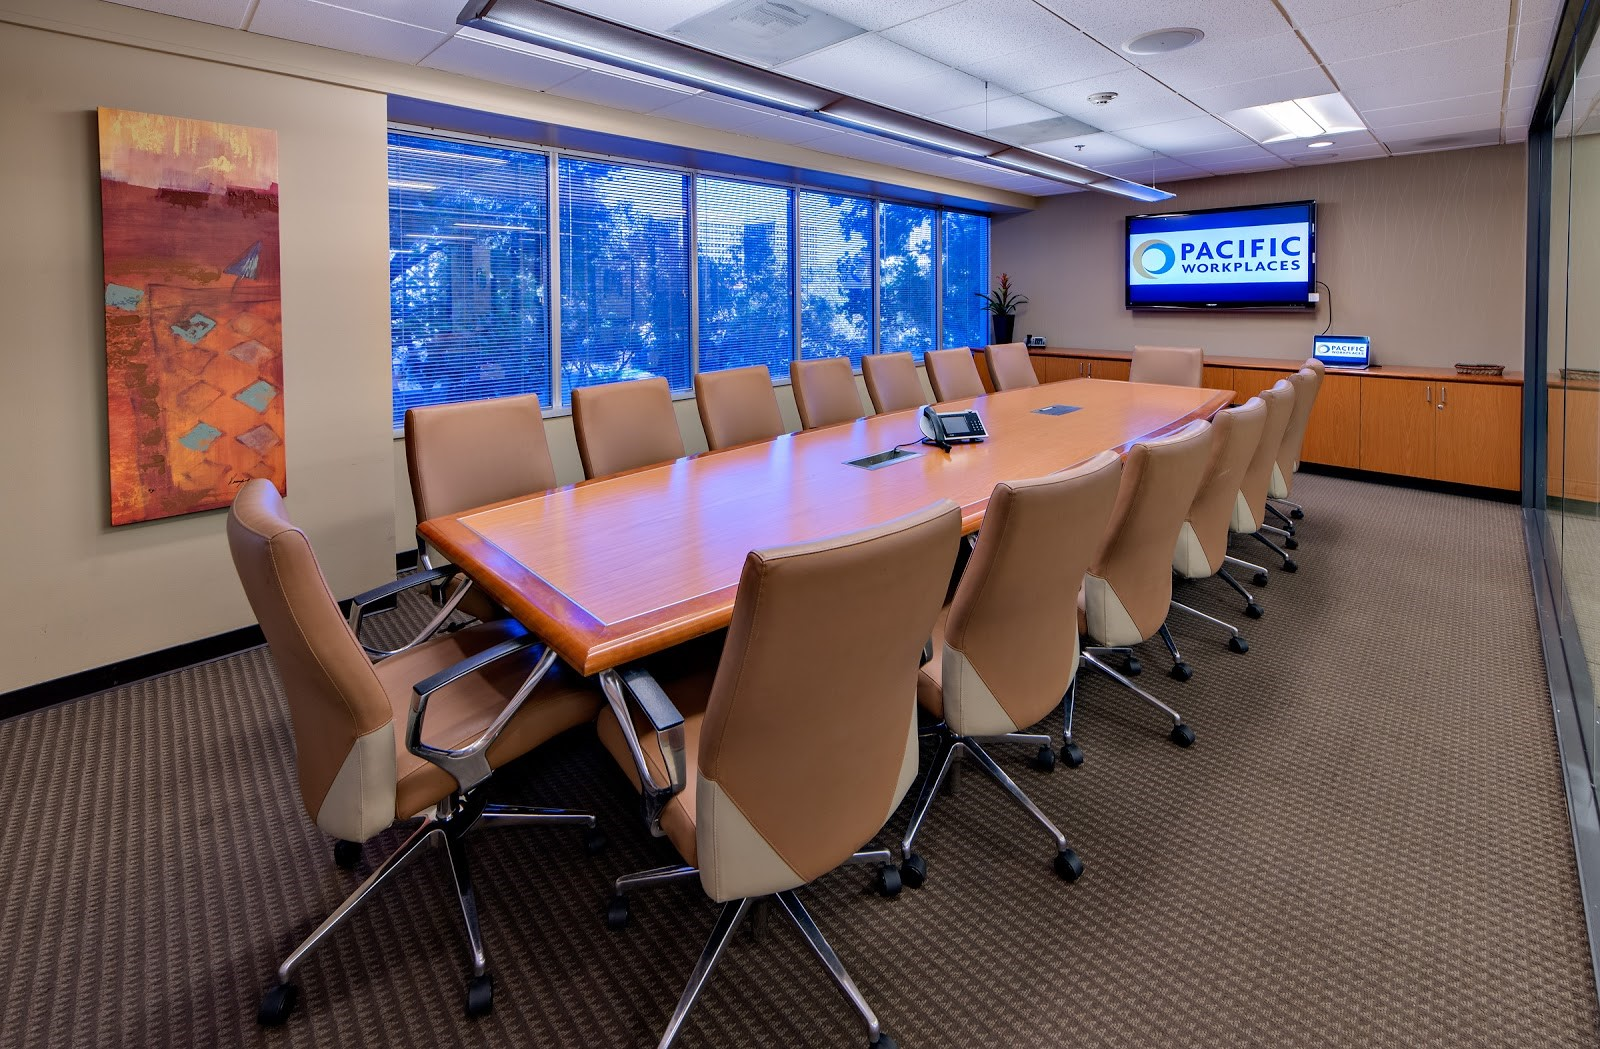 CloudVO City Guide Silicon Valley Pacific Workplaces San Jose Meeting Rooms